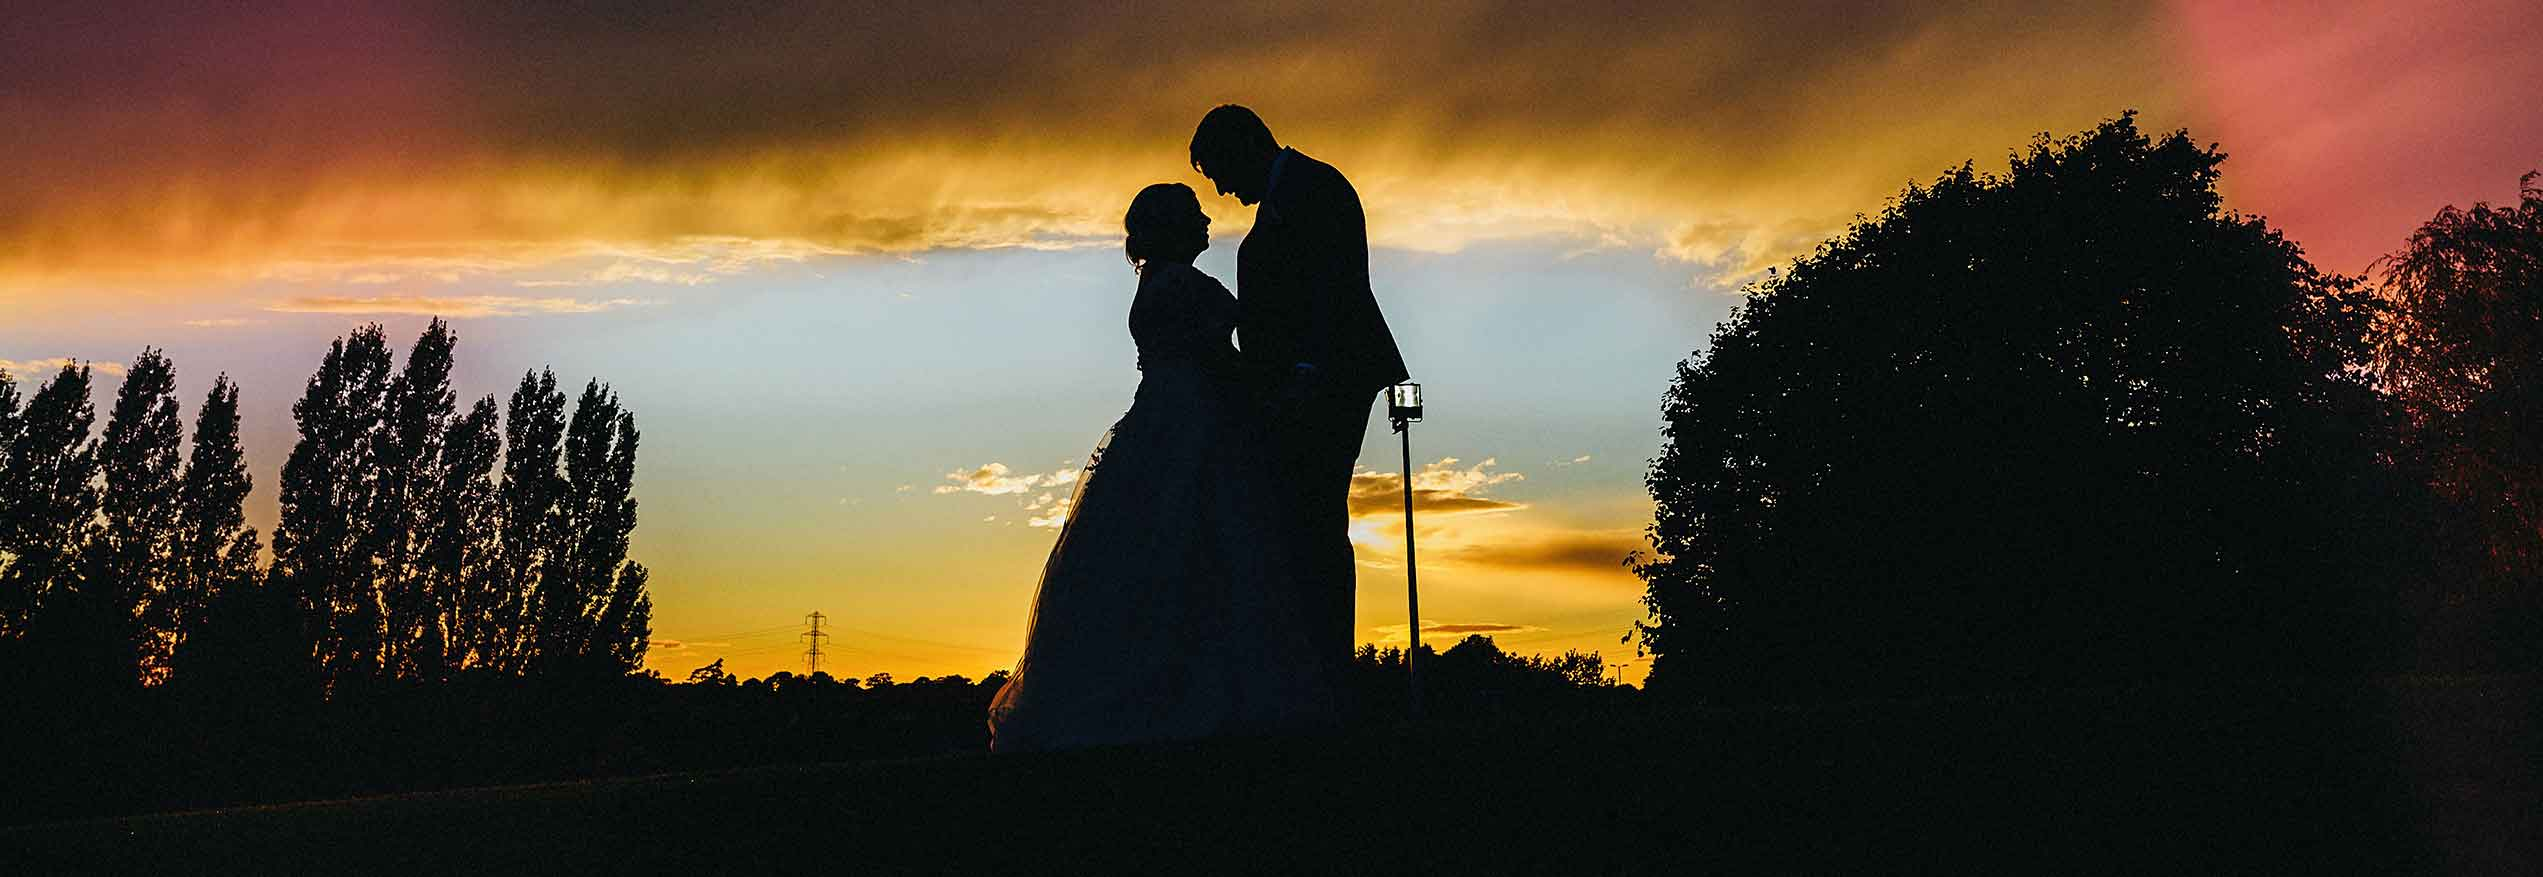 Bride and Groom silhouetted against a sunset - wedding prices